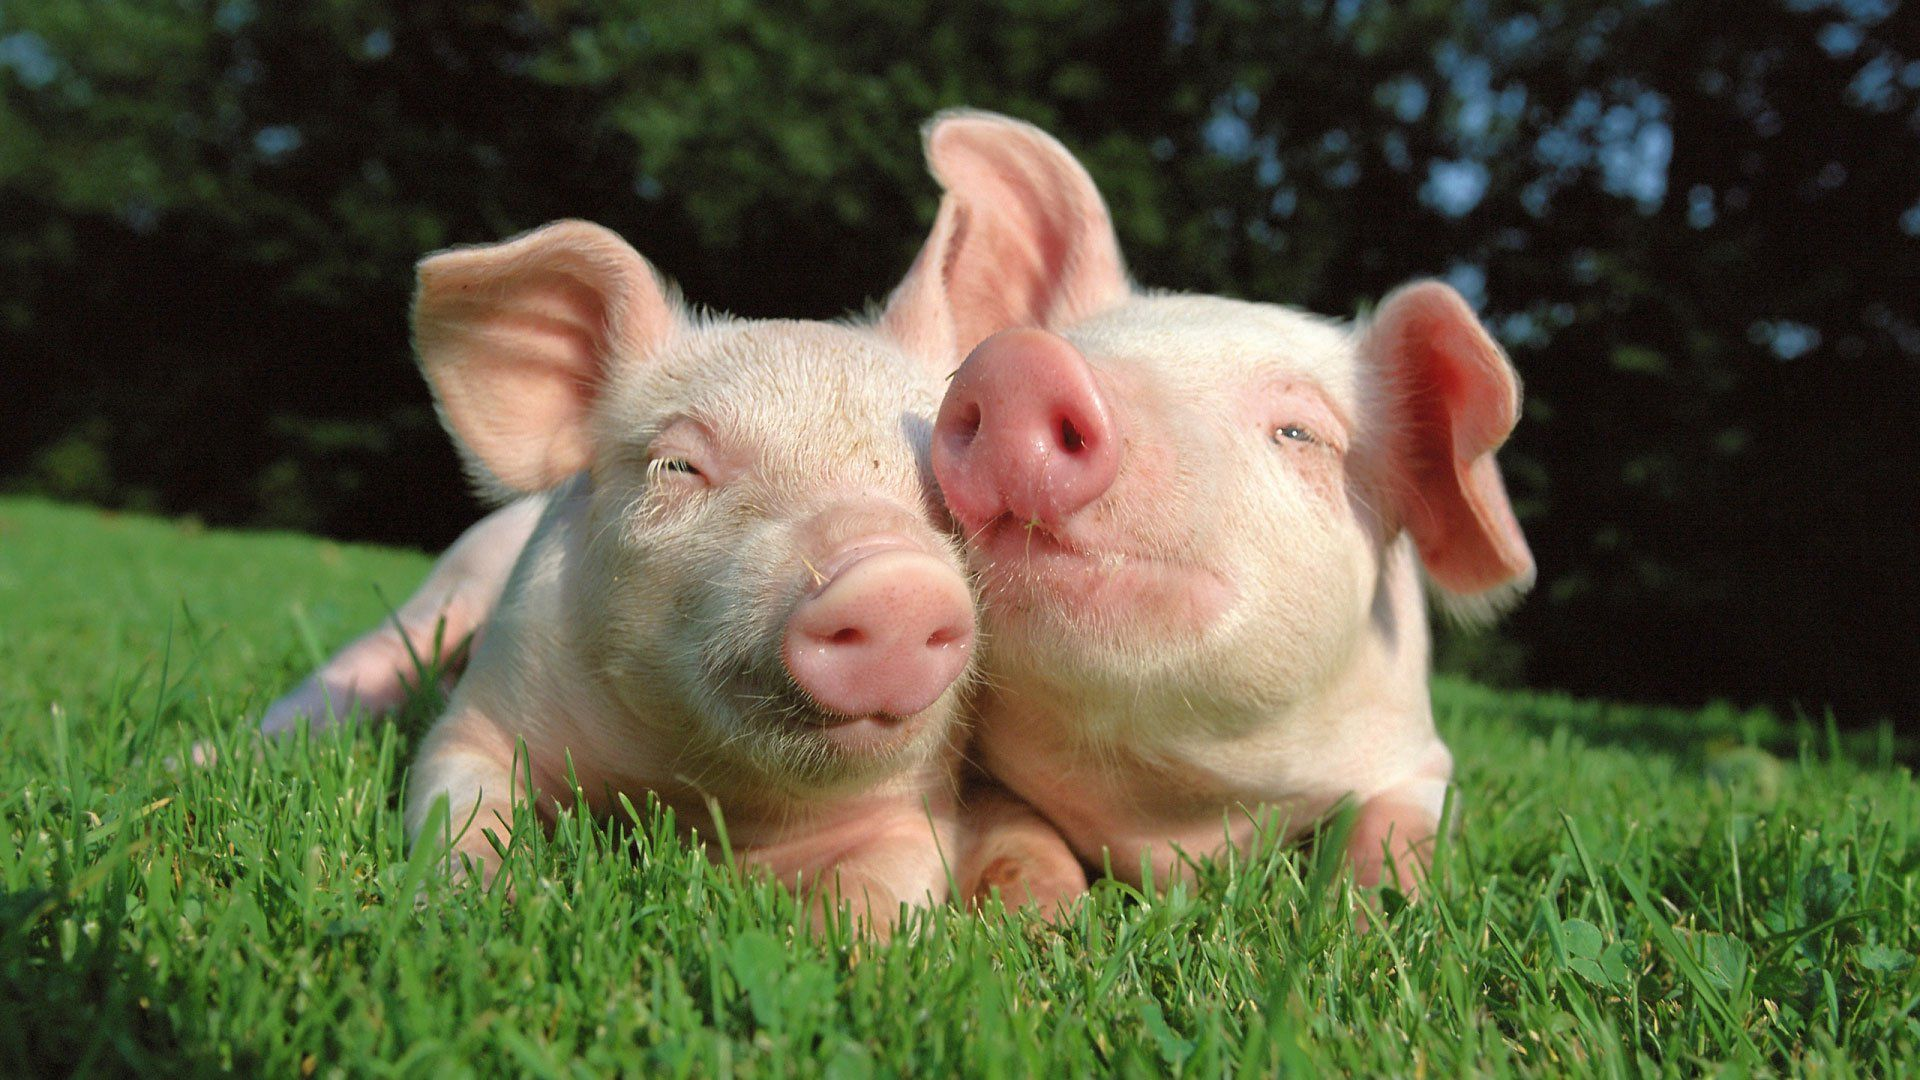 Cute Pigs Pictures